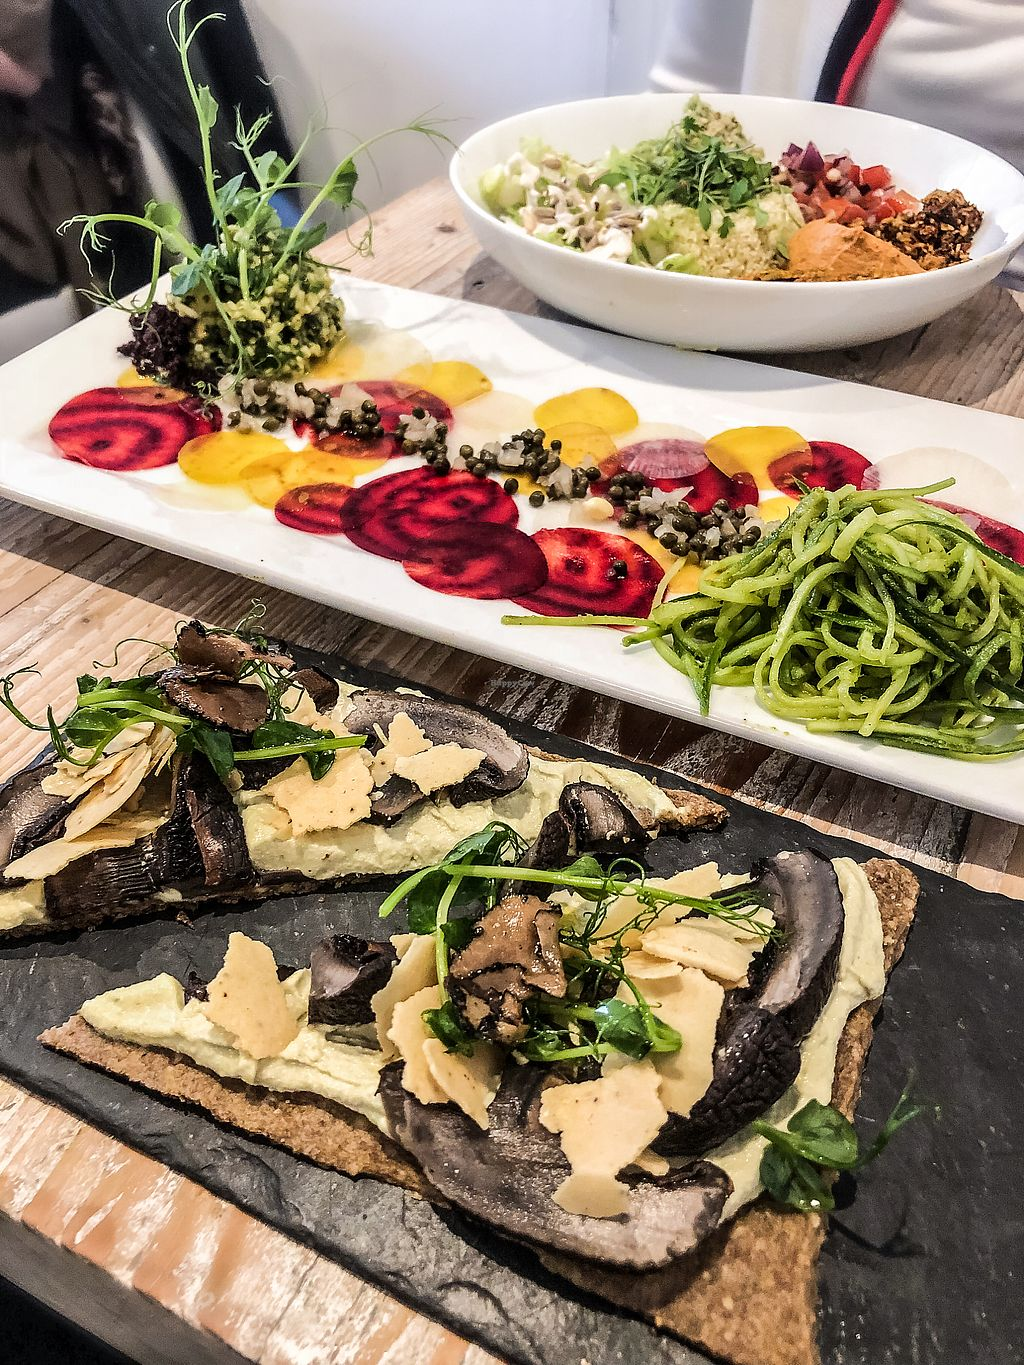 """Photo of CLOSED: Nama Artisan Raw Foods  by <a href=""""/members/profile/emiliepix"""">emiliepix</a> <br/>Brunch for champions! Fungi pizza and Mexican bowl! <br/> March 11, 2018  - <a href='/contact/abuse/image/36686/369449'>Report</a>"""